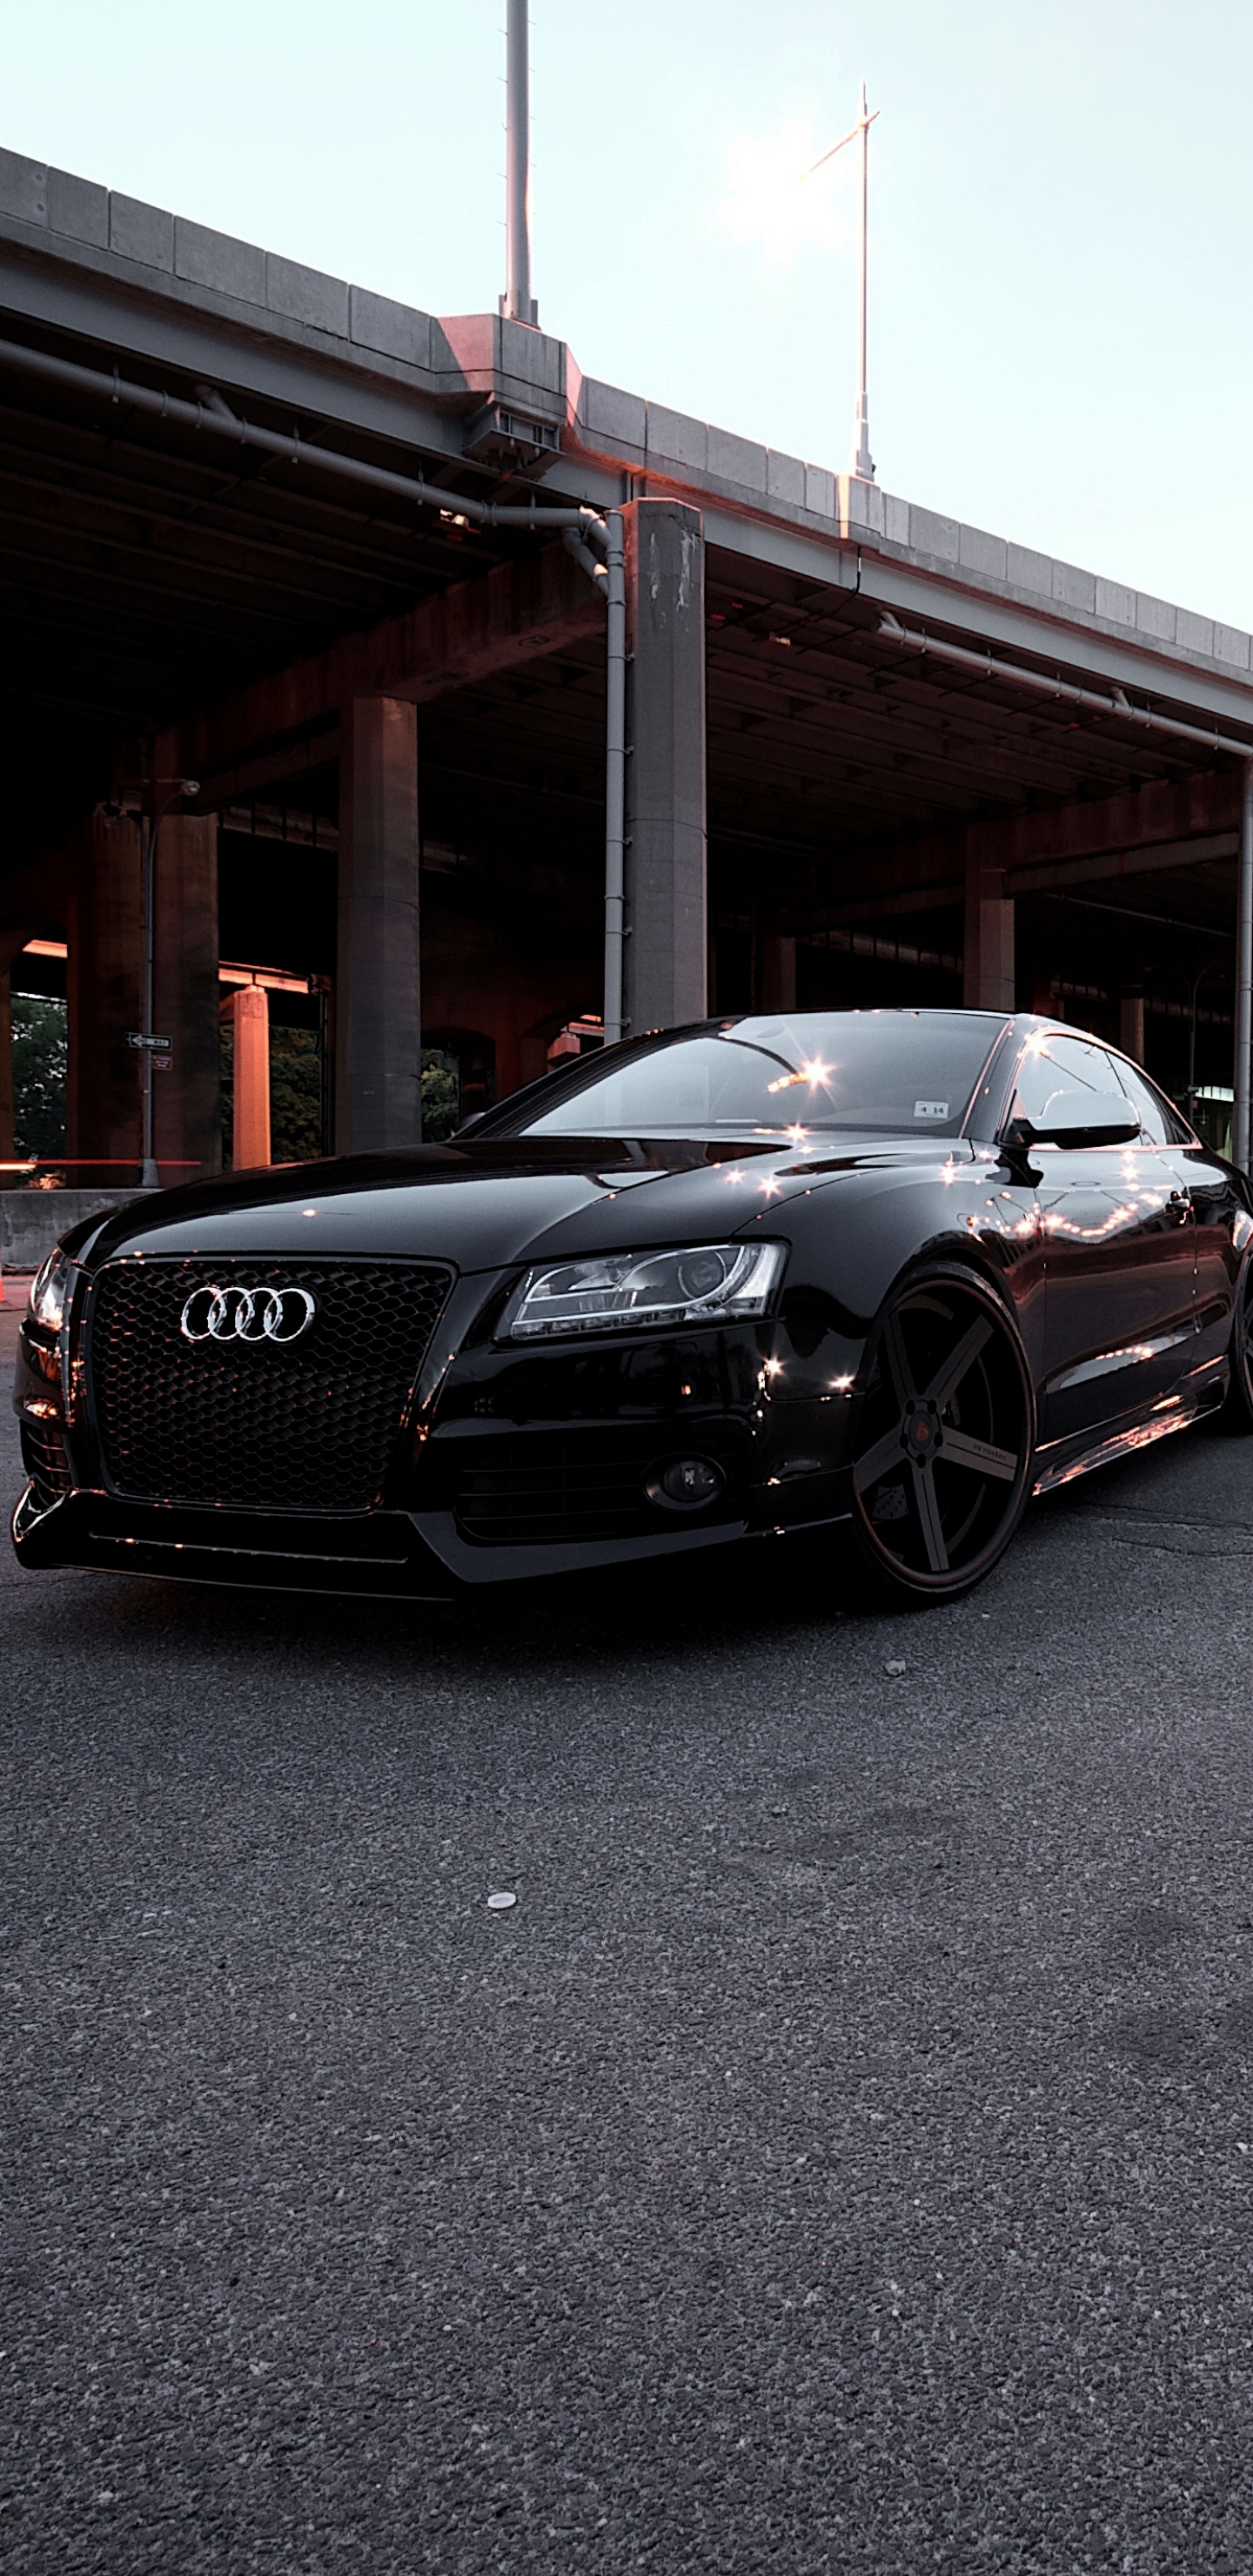 Vehicles Audi Rs5 1440x2960 Wallpaper Id 747922 Mobile Abyss